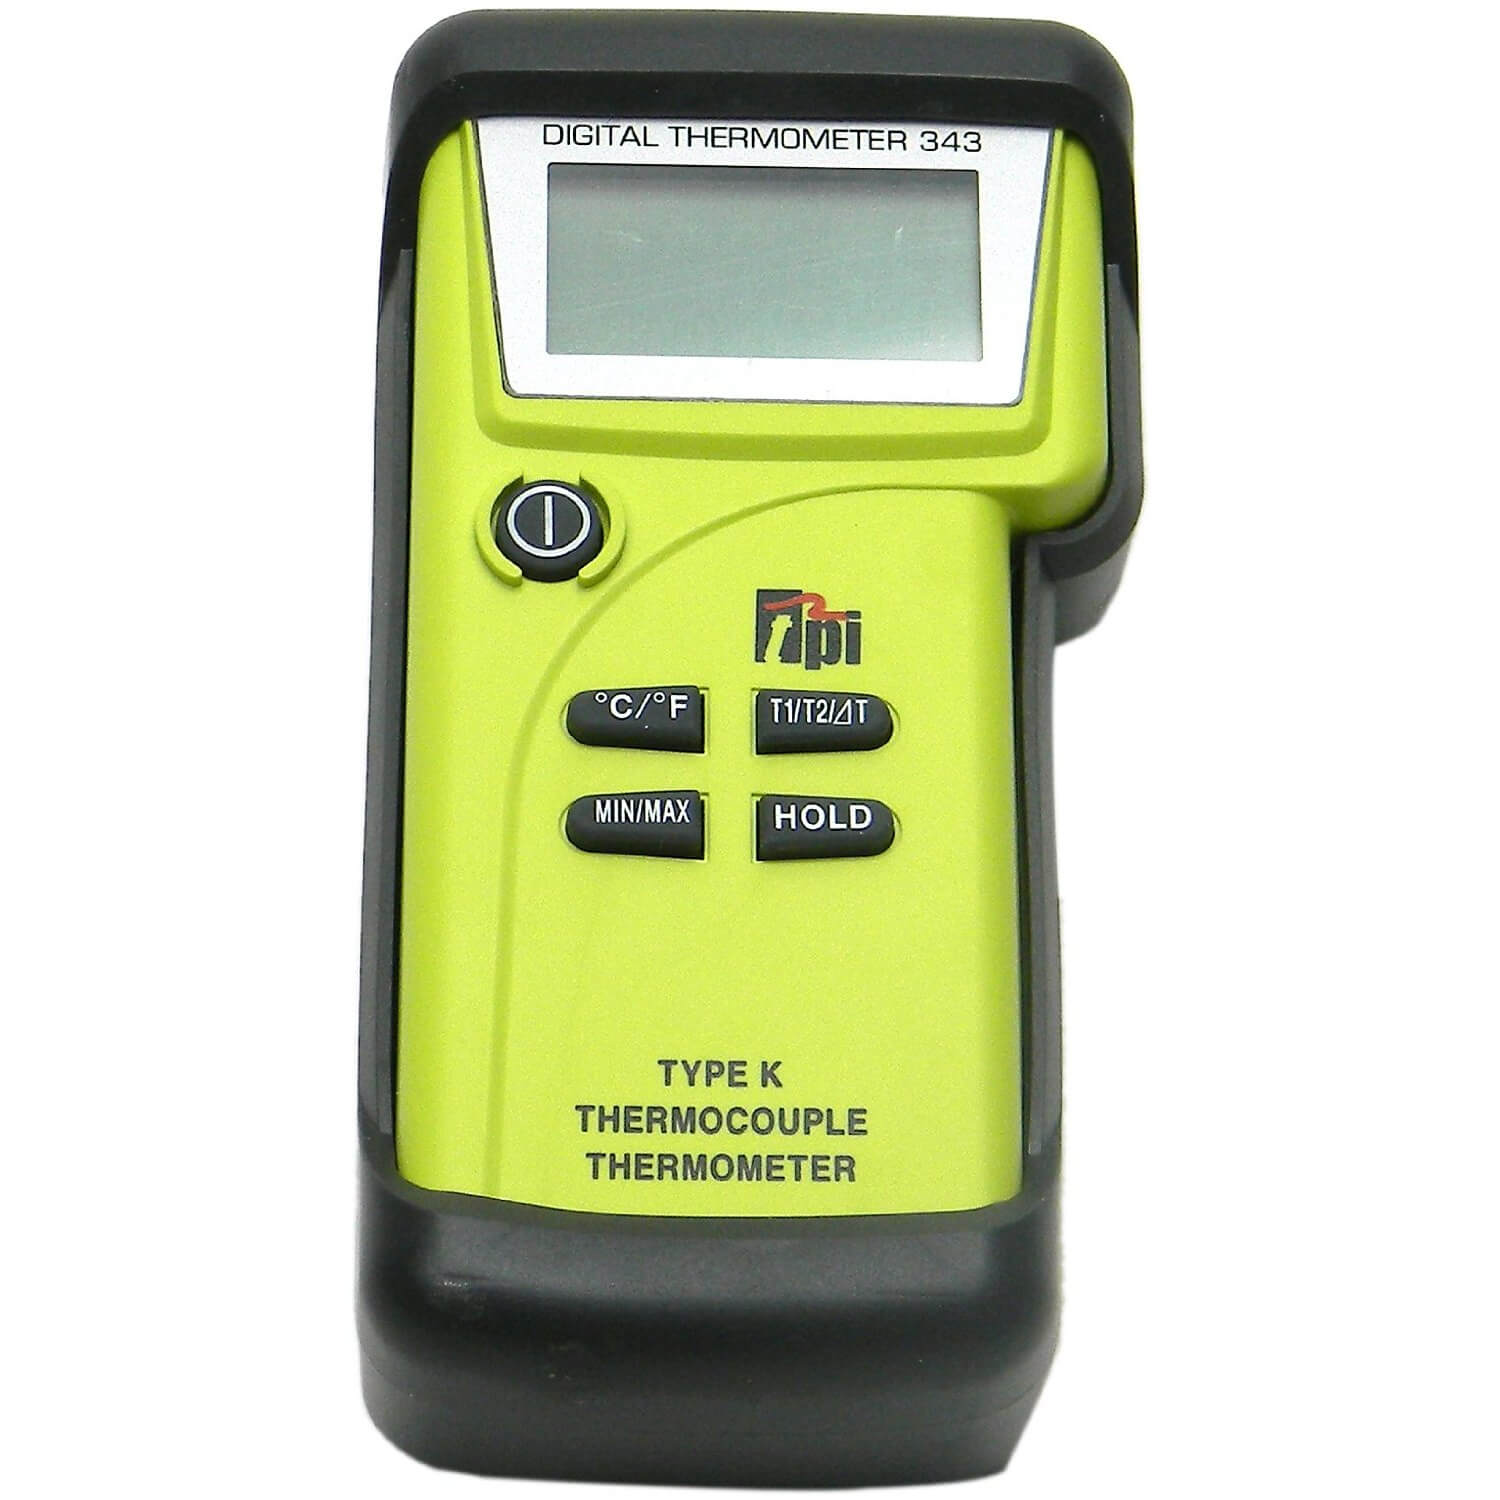 TPI 343C3 Digital Thermometer with Dual Input K-Type Thermocouple